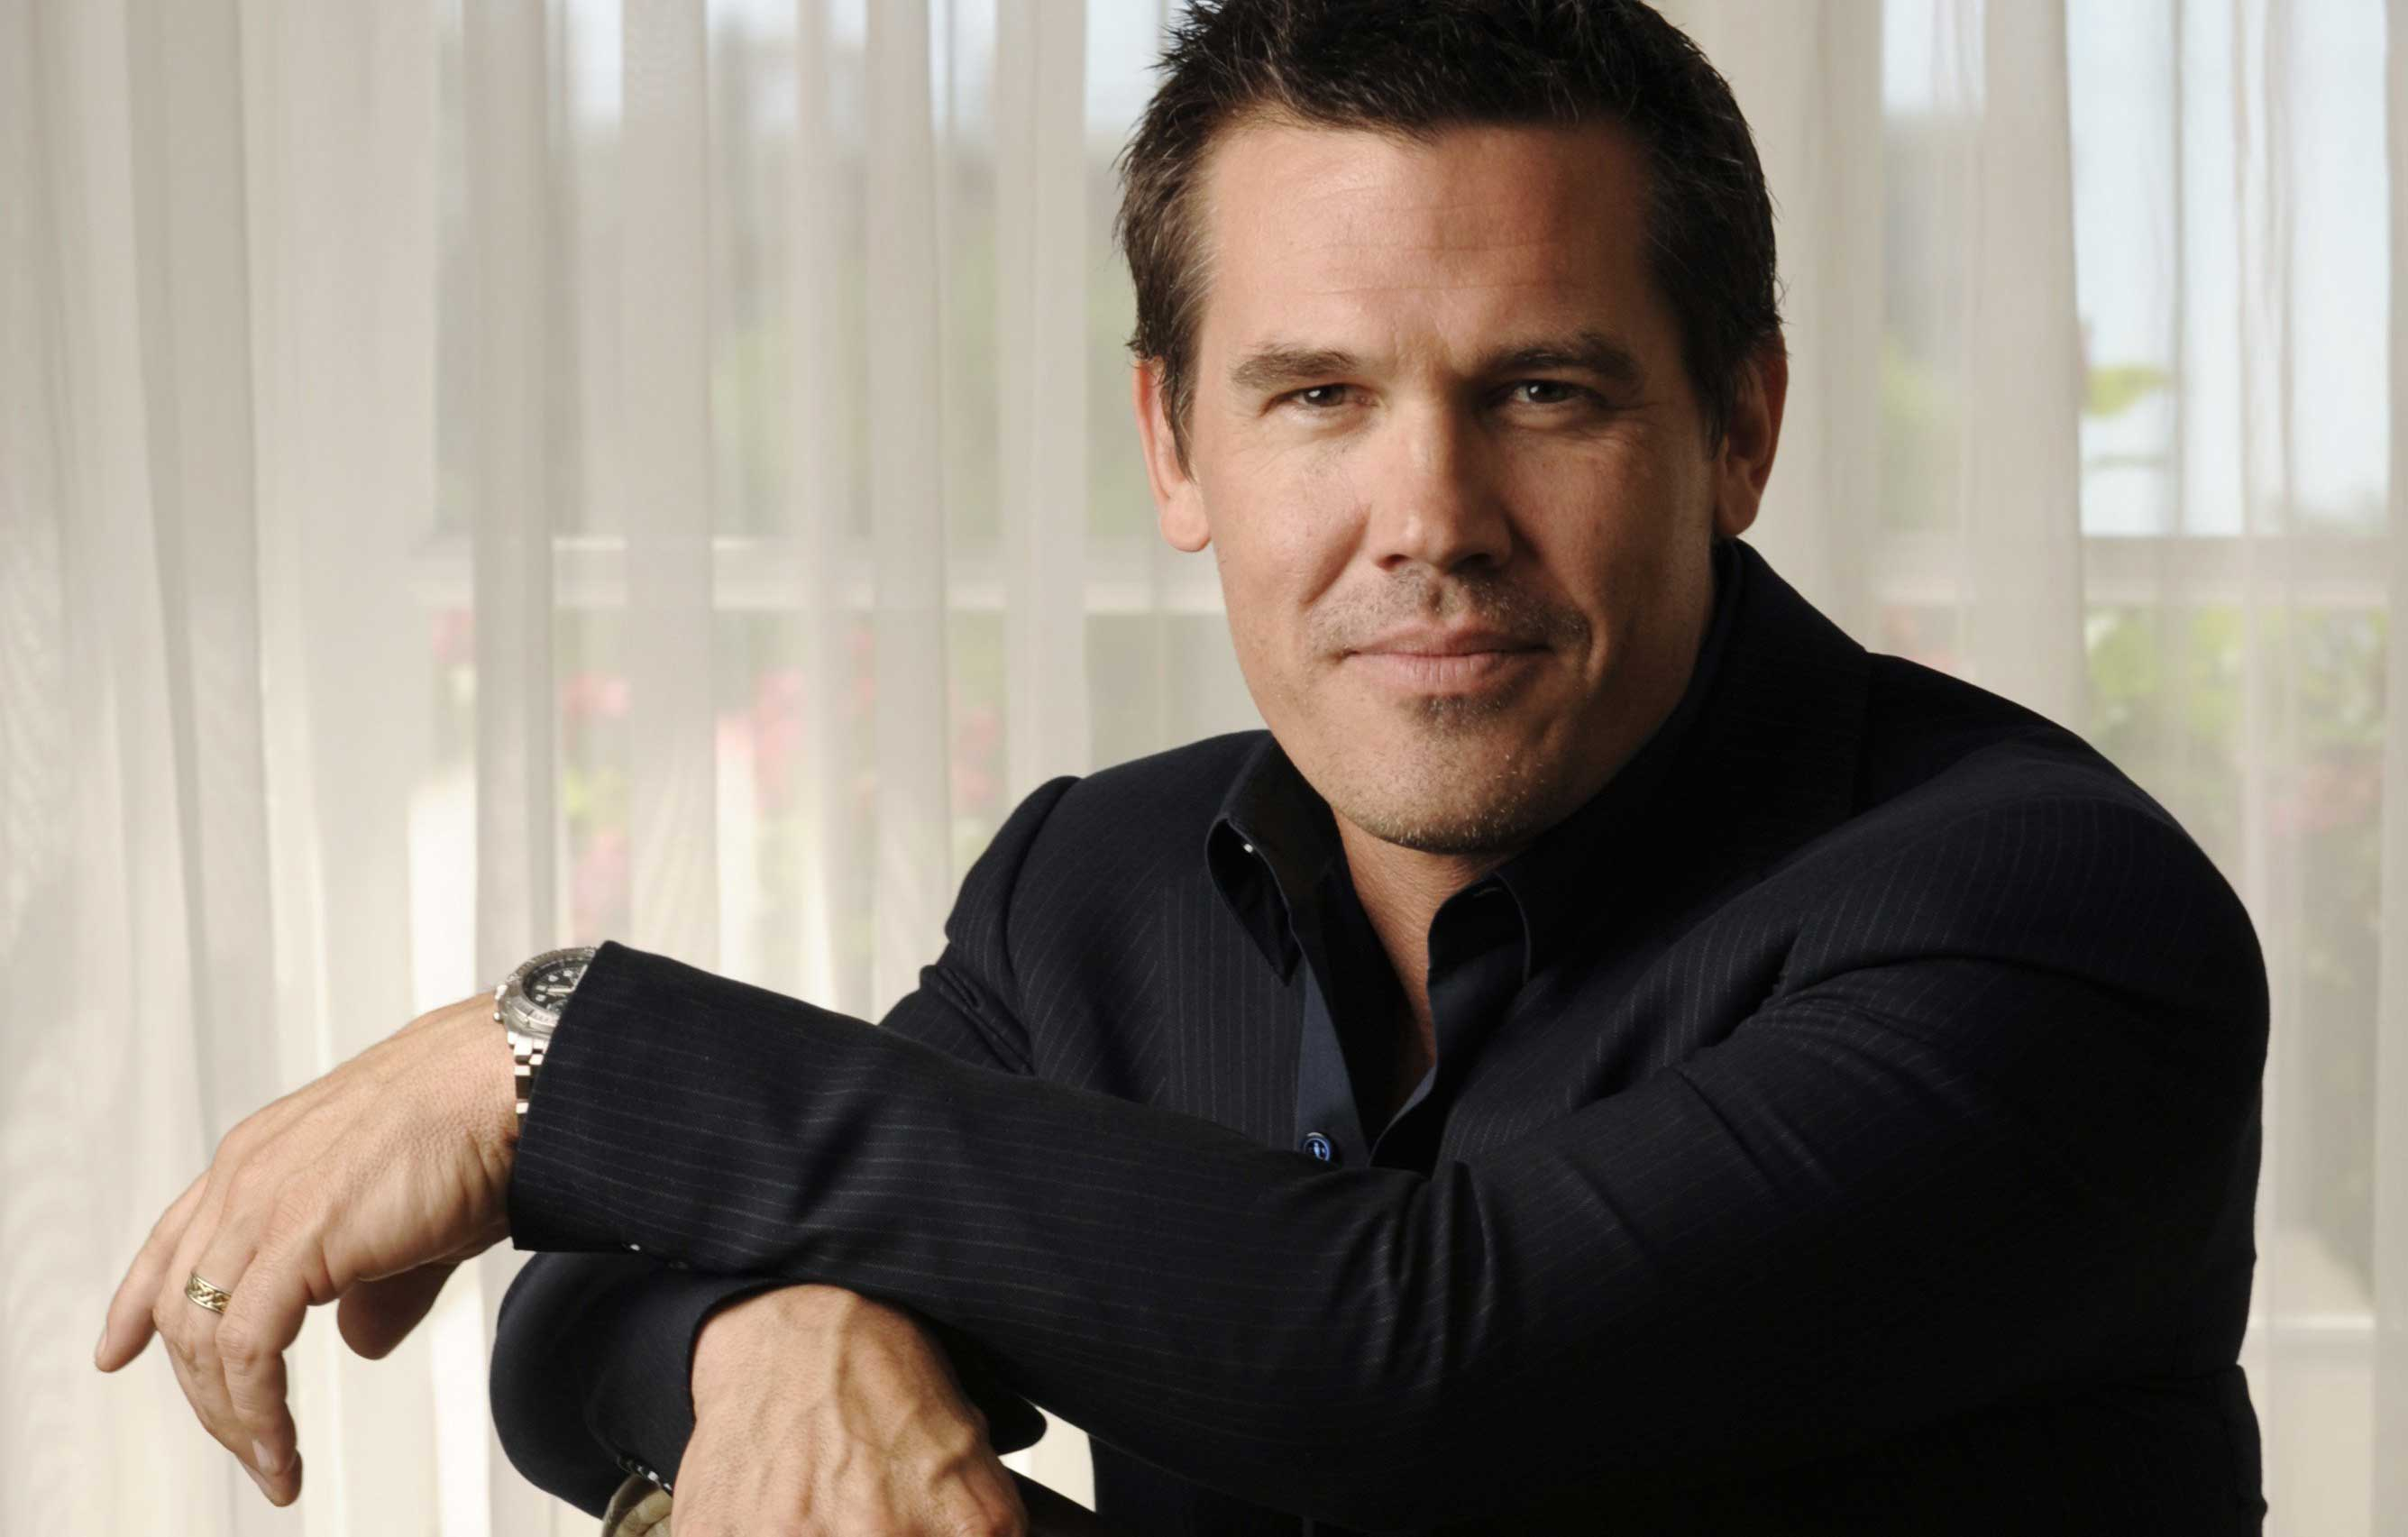 Josh Brolin hd wallpaper Wallpaper